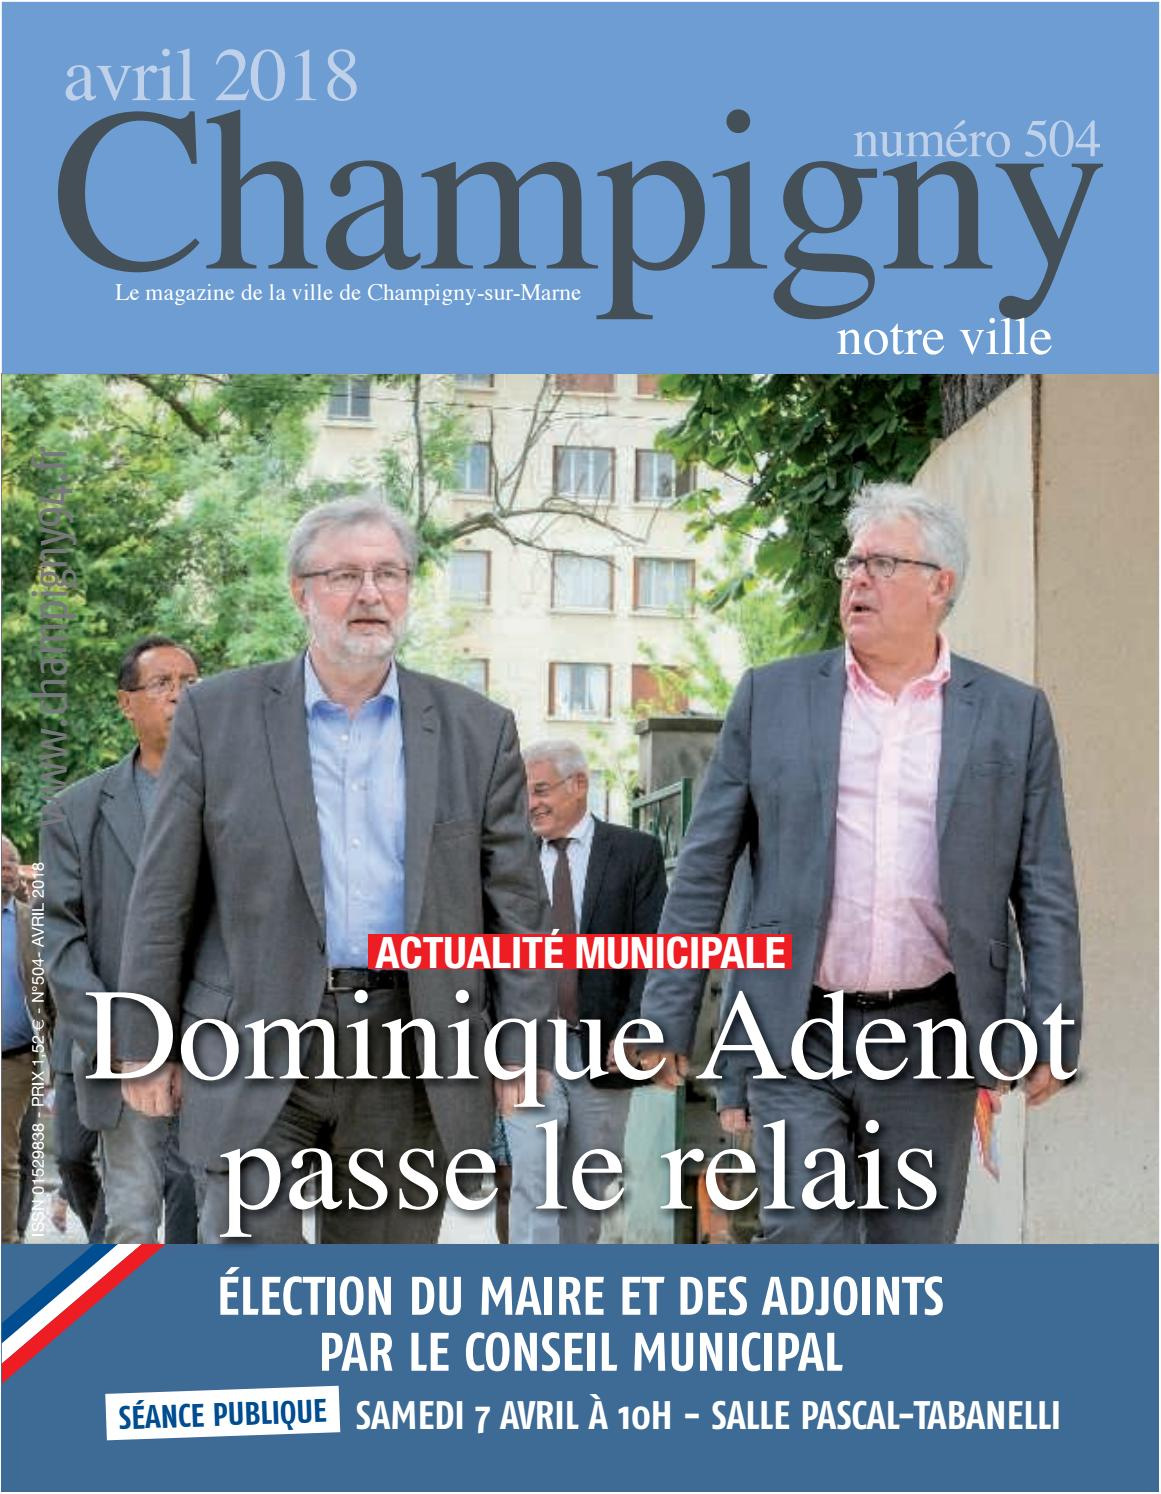 Champigny notre ville n° 504 - avril 2018 by N R - issuu 36be4bd45880